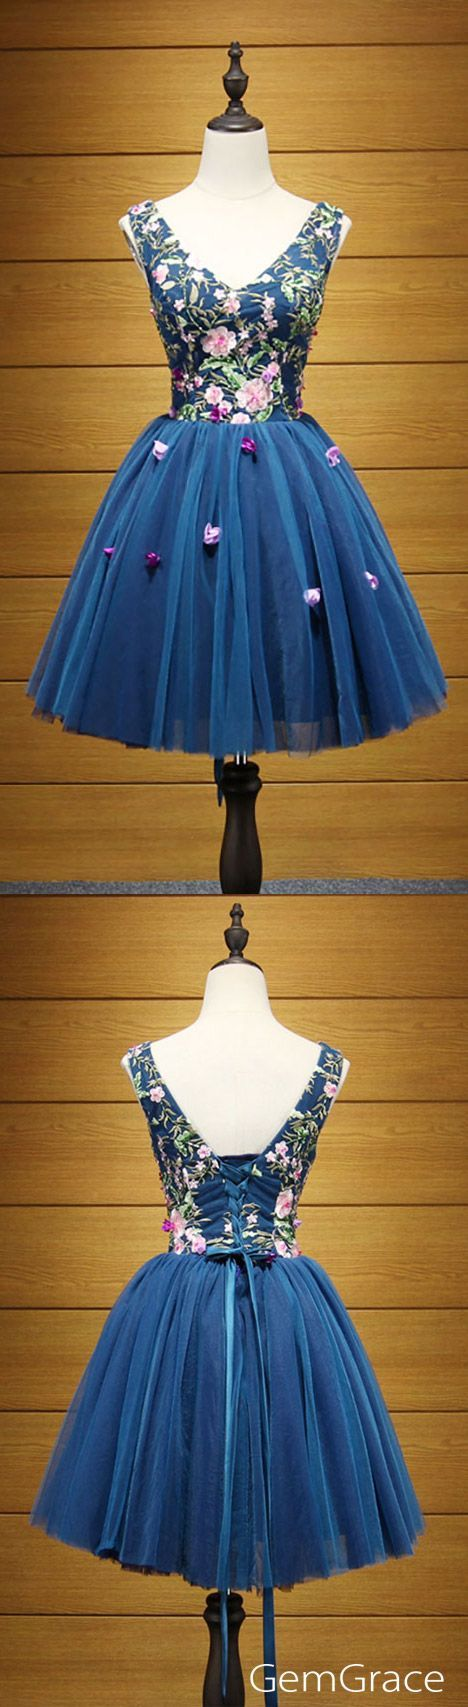 Floral and navy blue short tulle prom dress #MonsoonIsHere